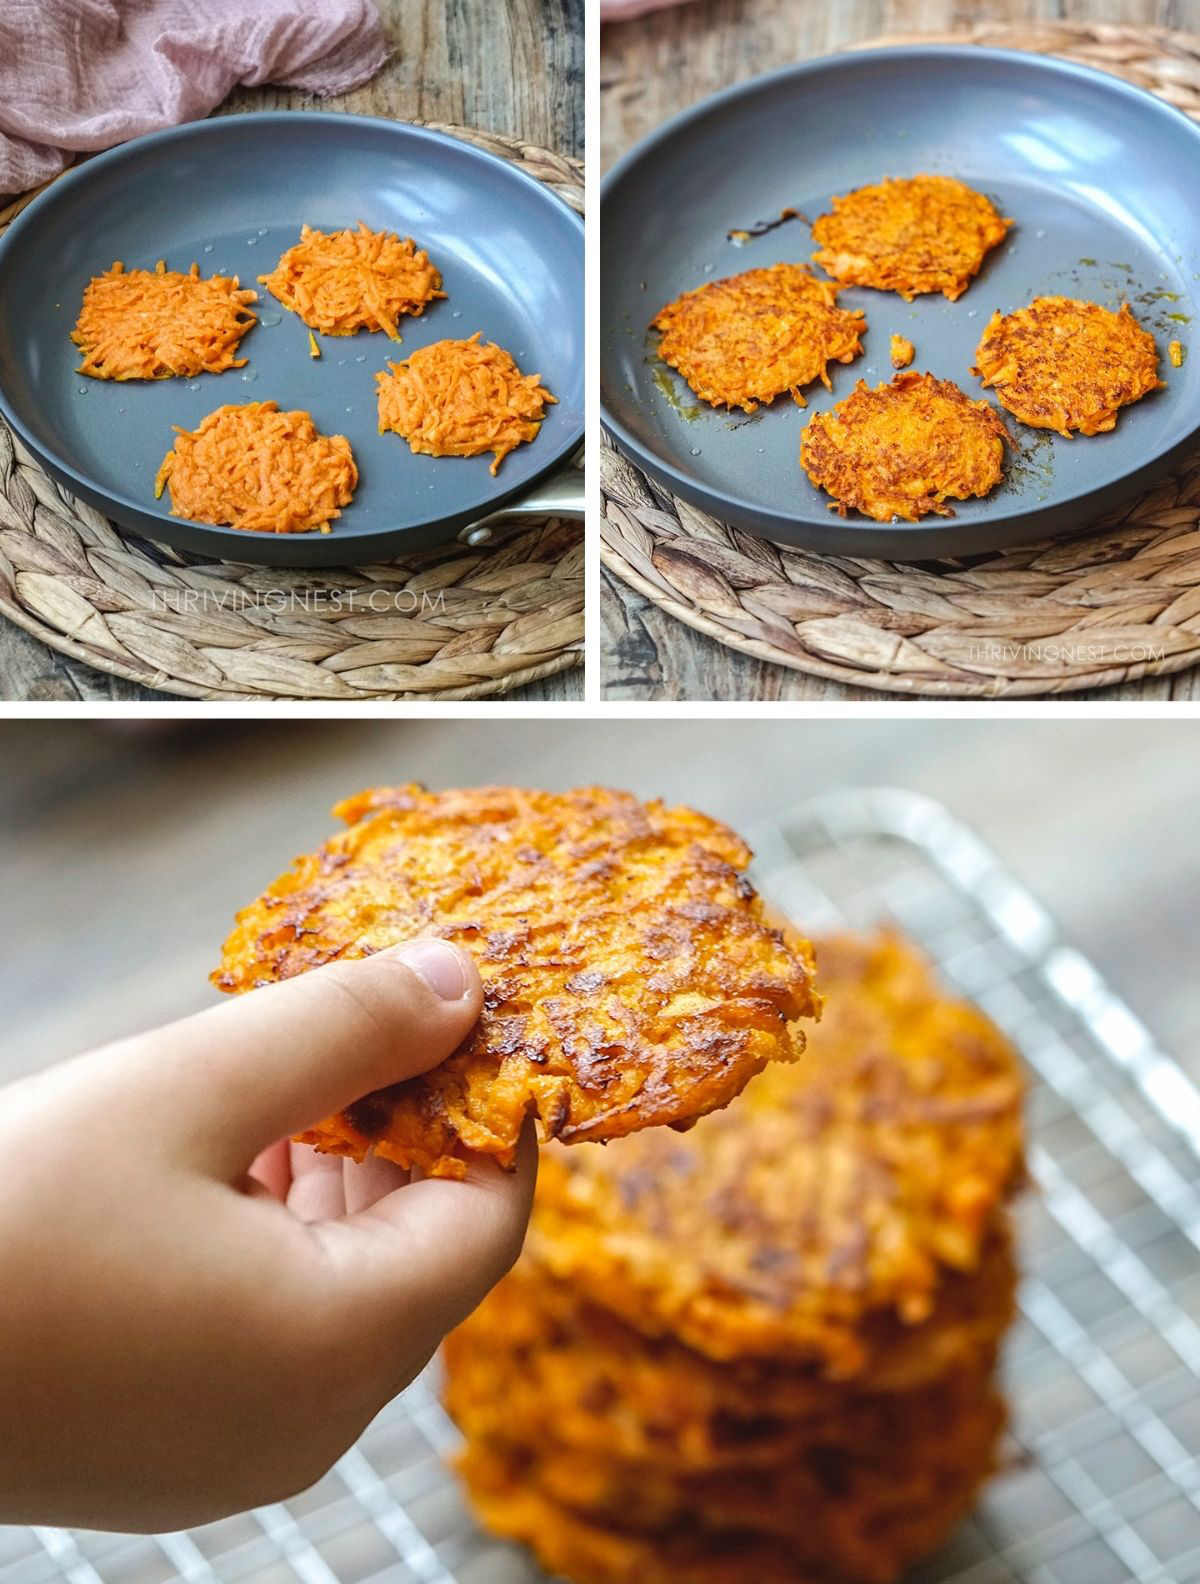 How to make and cook sweet potato fritters / latkes for baby, toddler - process shots.